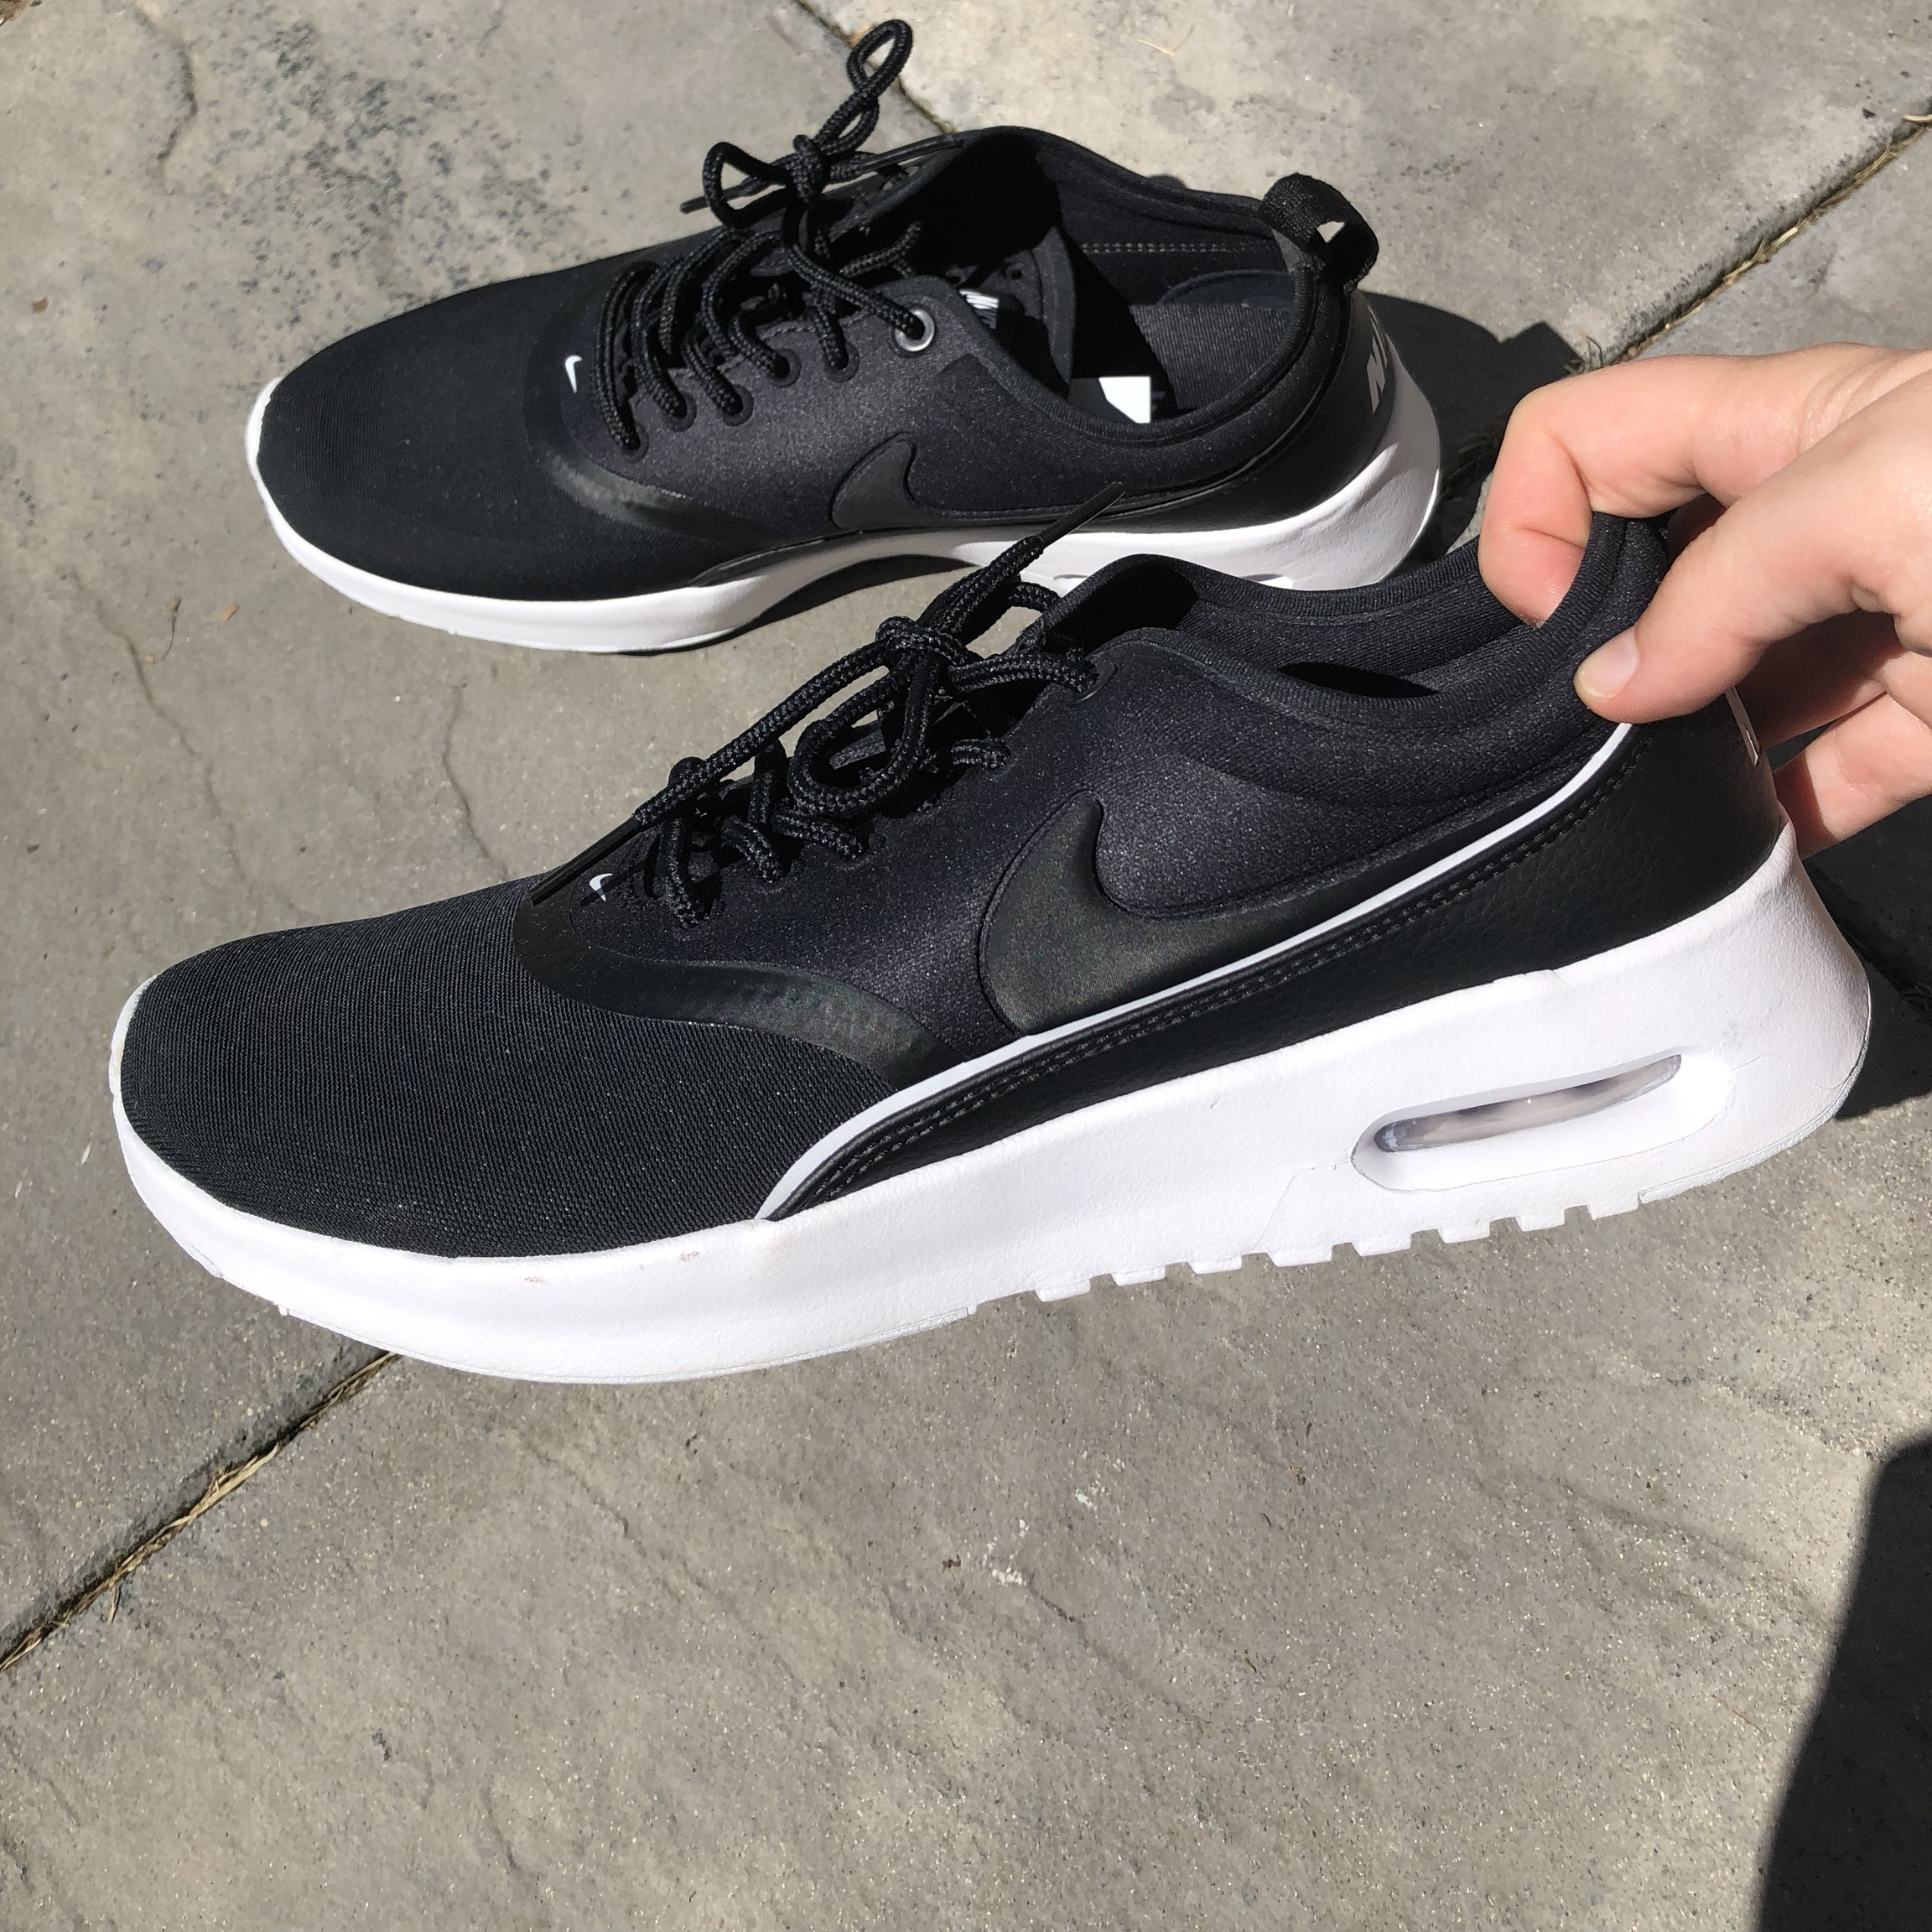 Nike Air Max Thea Ultra, Size 6 Absolutely amazing Depop